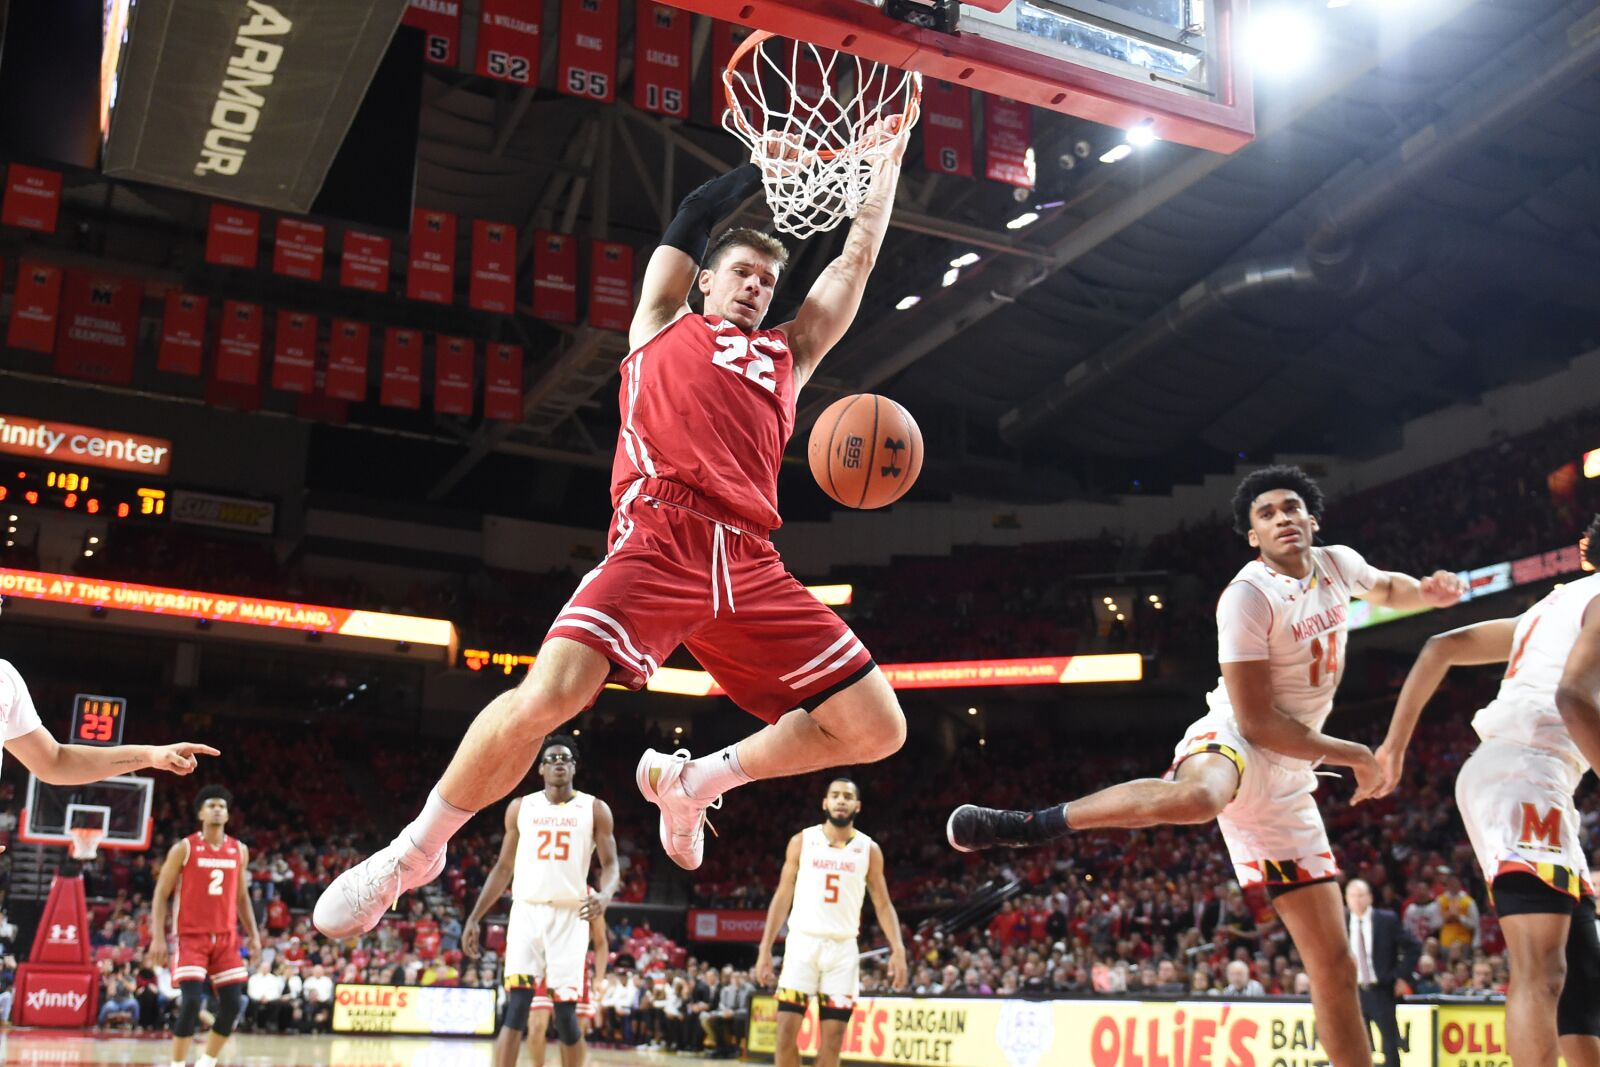 Michigan Vs Wisconsin Live Stream Watch College Basketball Online